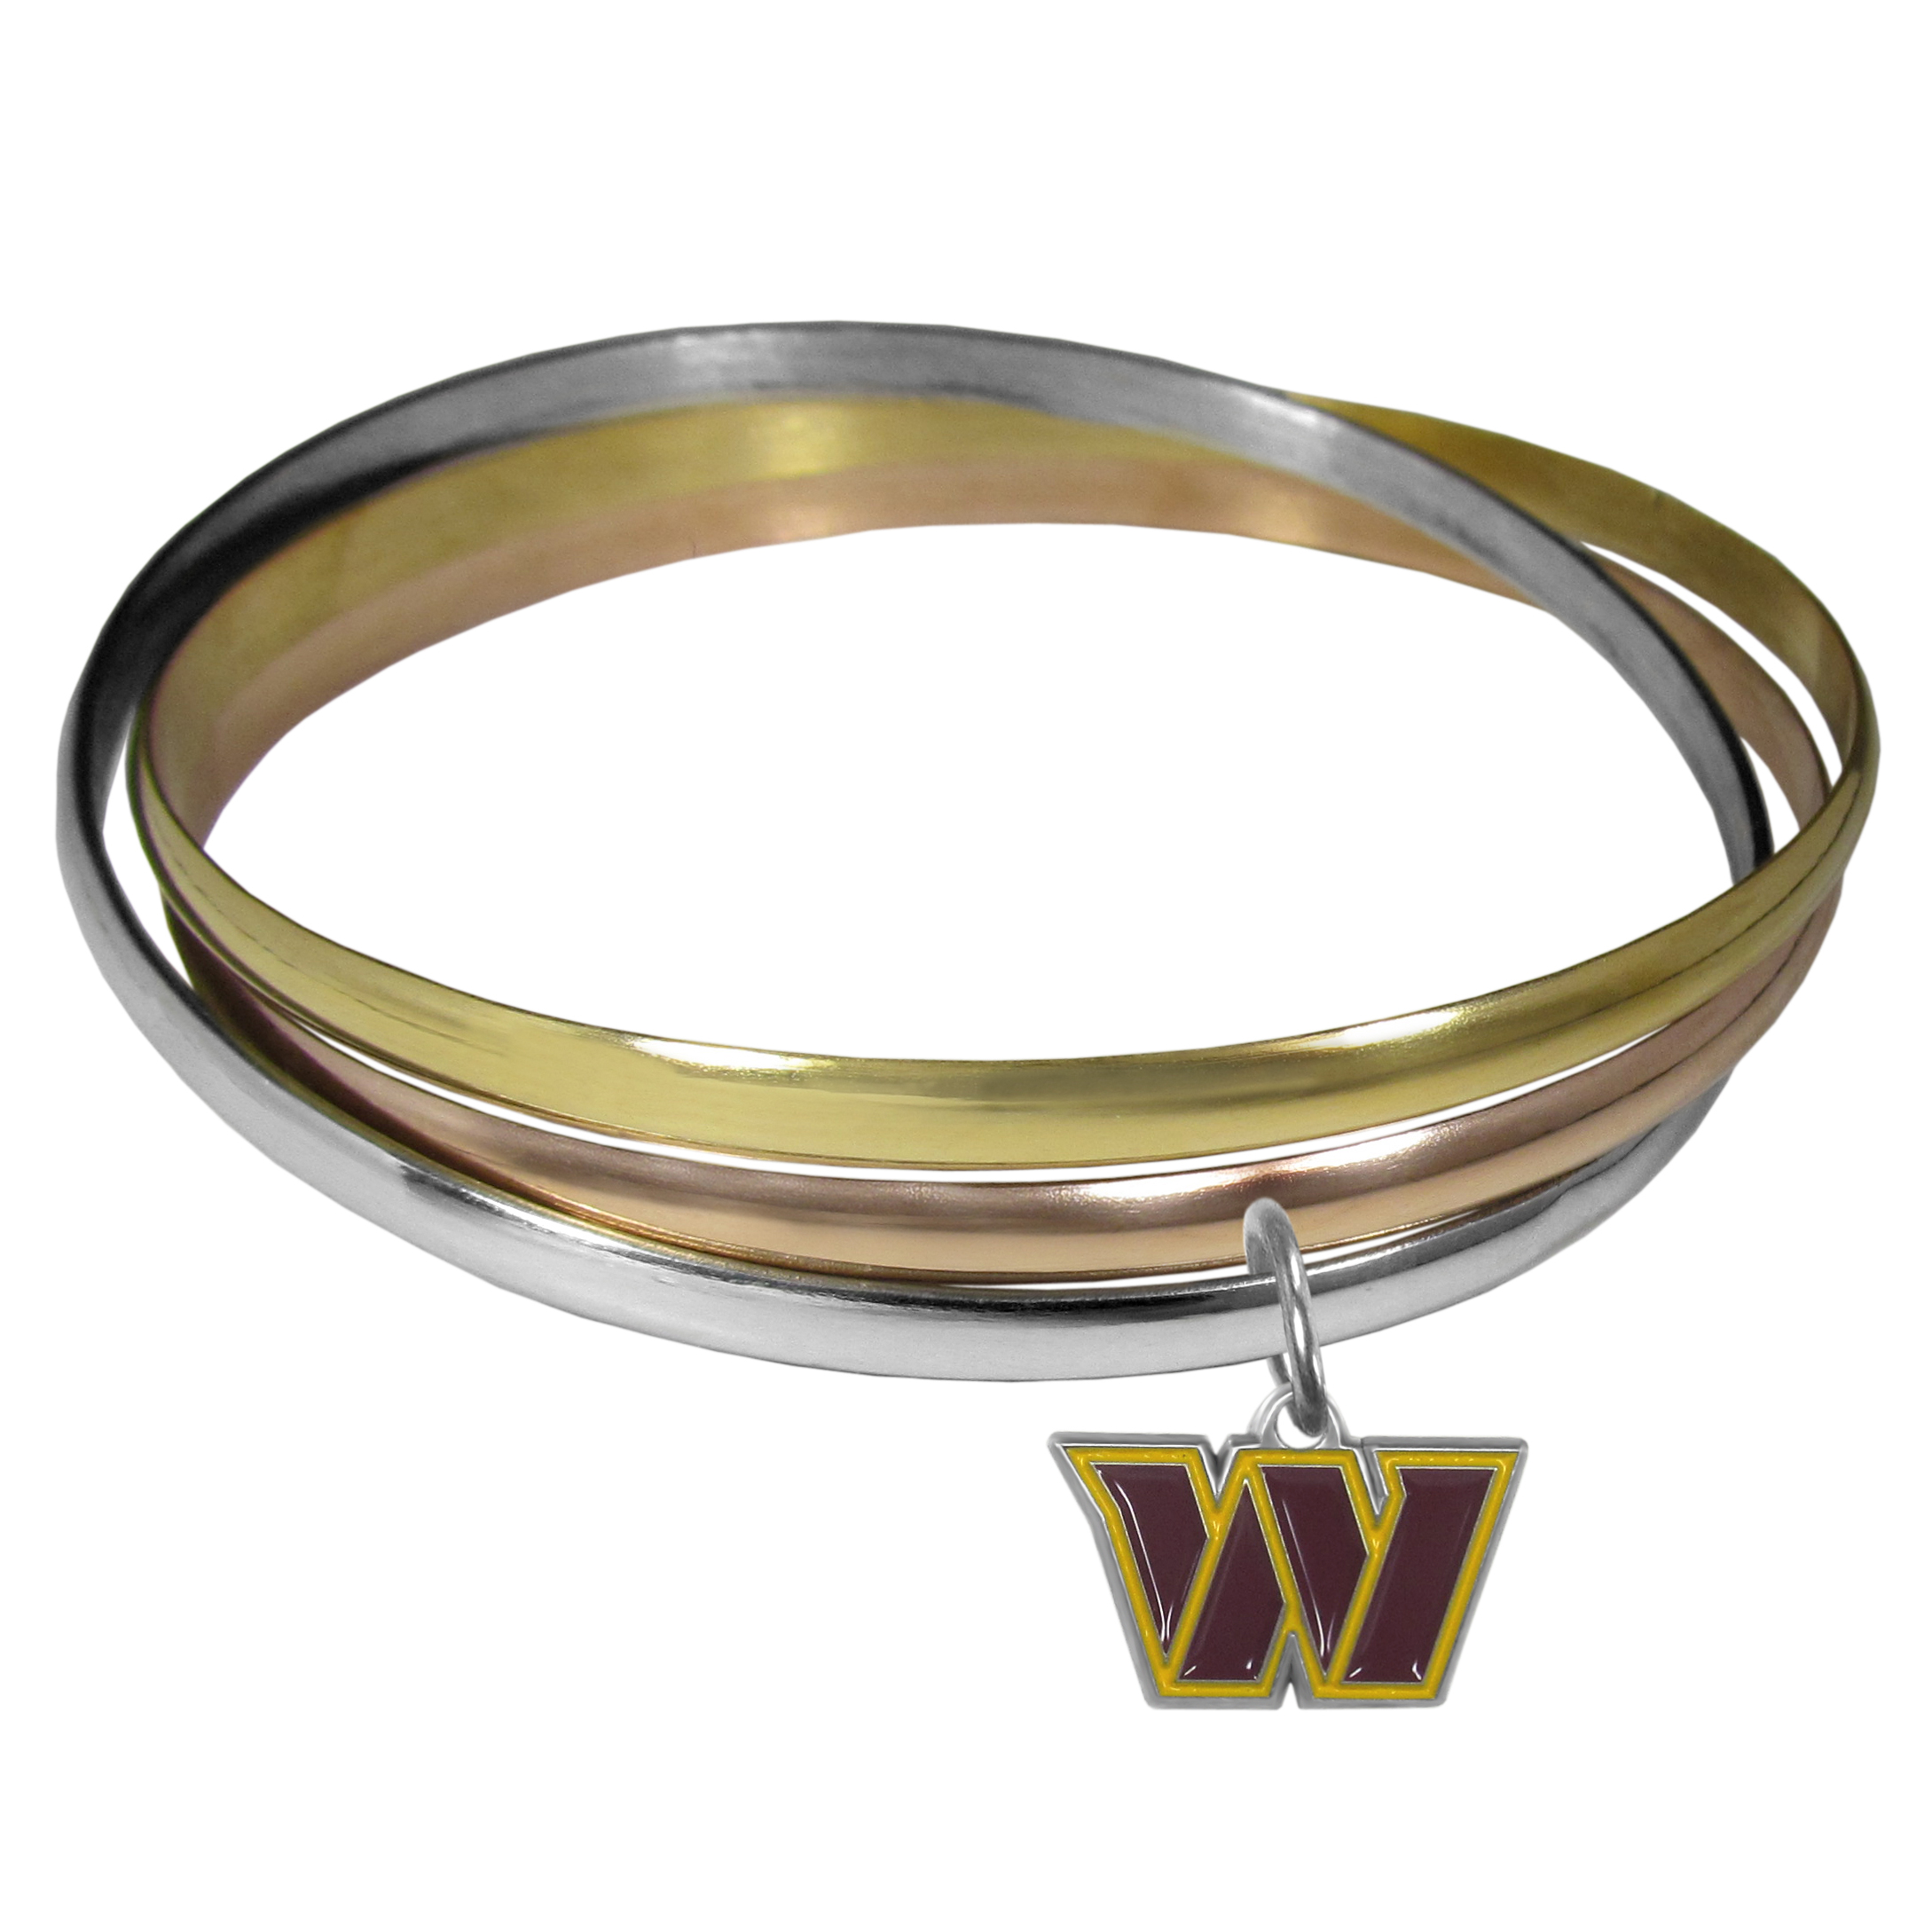 Washington Redskins Tri-color Bangle Bracelet - These beautiful bangles come in a interlocking style and feature a fully cast Washington Redskins charm with enameled team colors. The bracelet has a silver toned bangle, gold tone bangle and brass toned bangle.